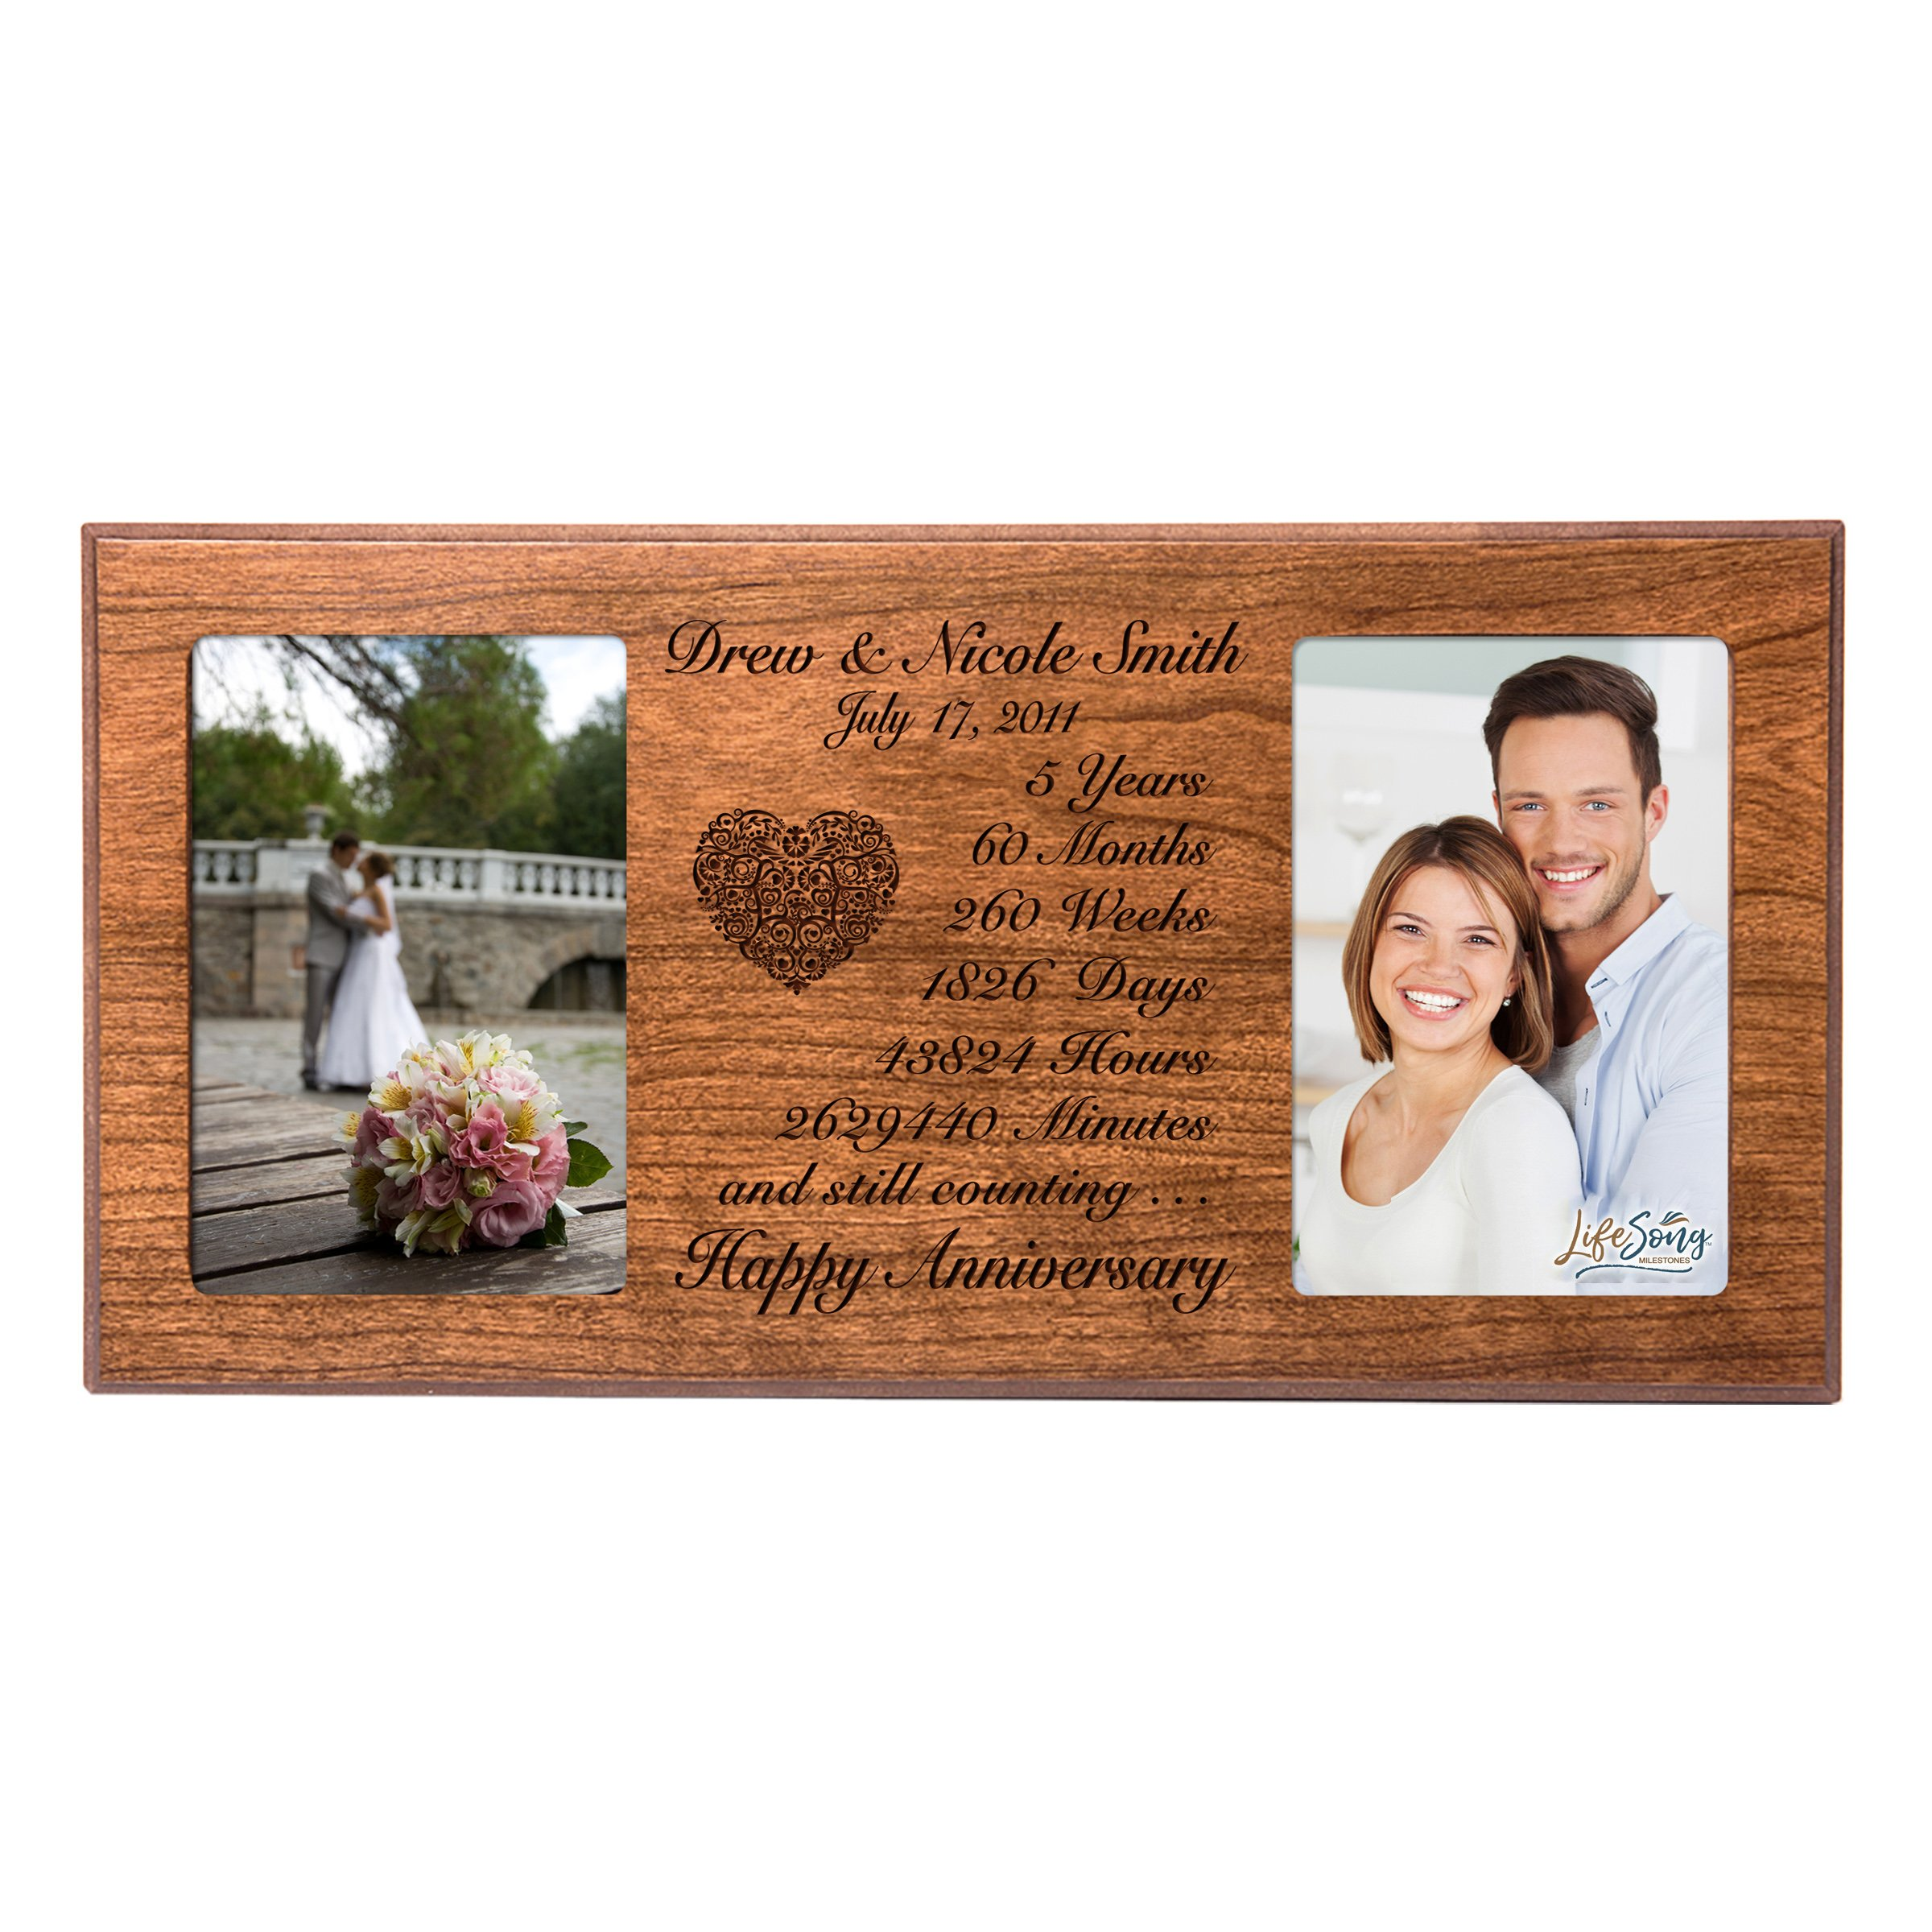 Personalized five year anniversary gift her him couple Custom Engraved wedding celebration for Husband wife girlfriend boyfriend photo frame holds two 4x6 photos by LifeSong Milestones (Cherry)